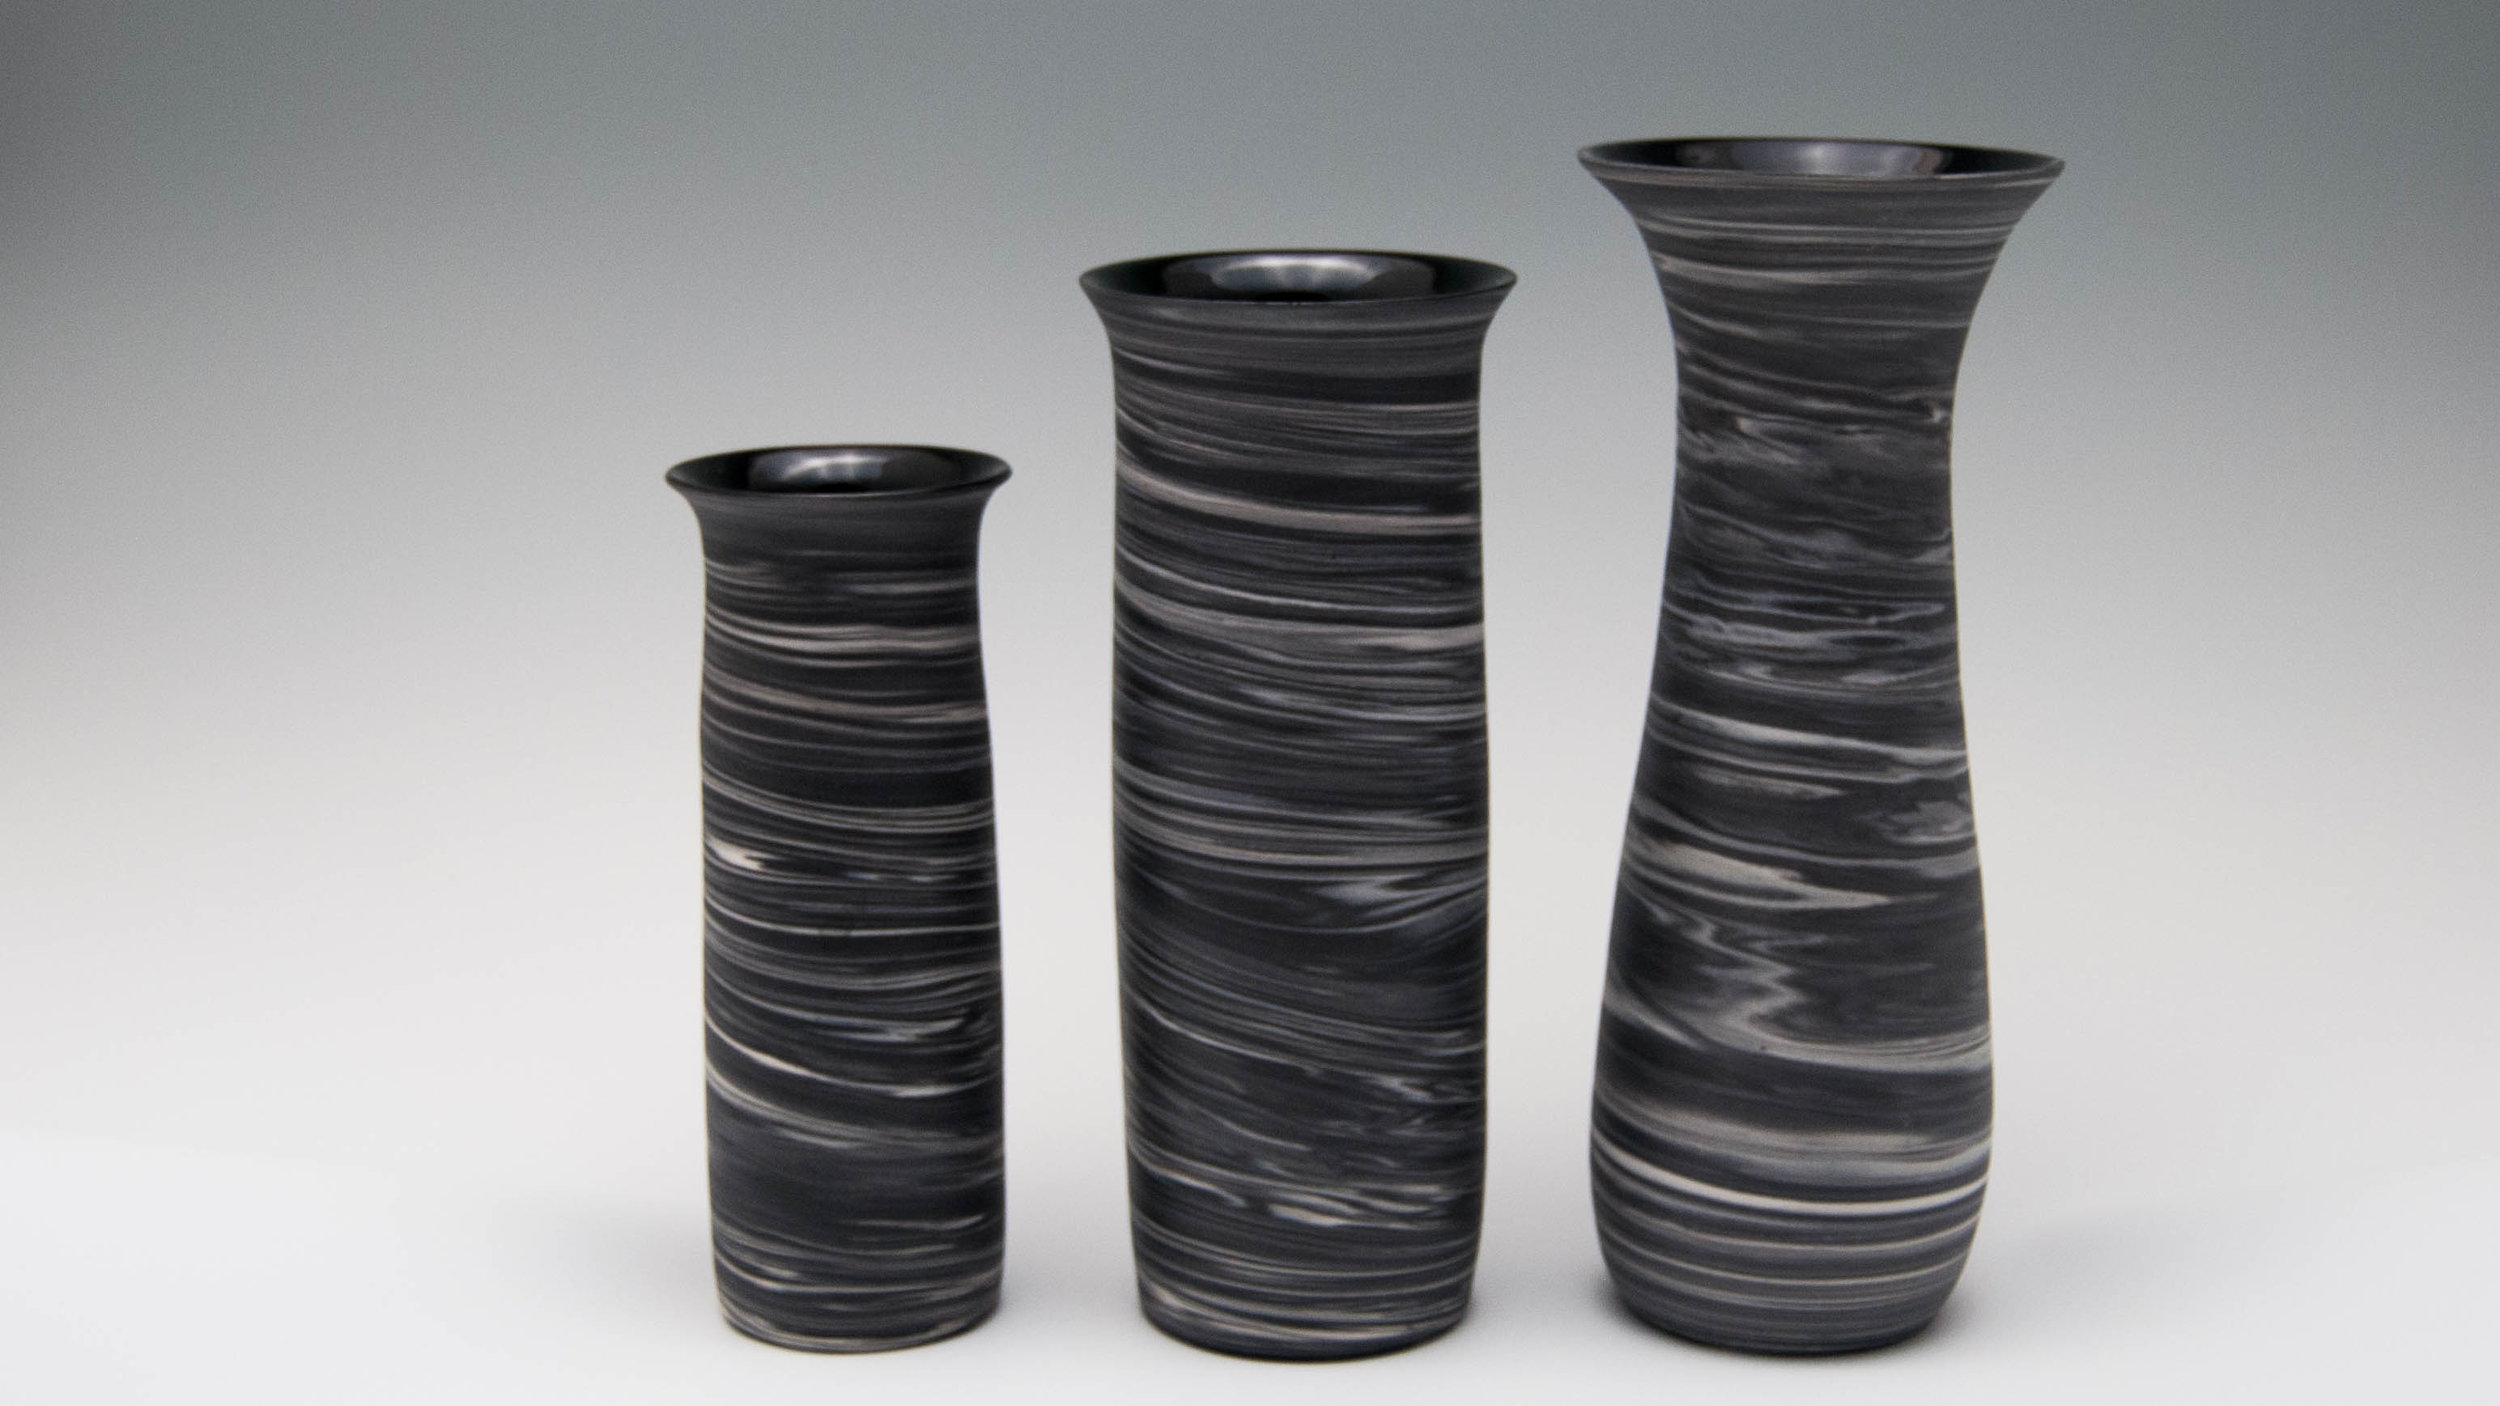 Copy of Vases, Kyle Day